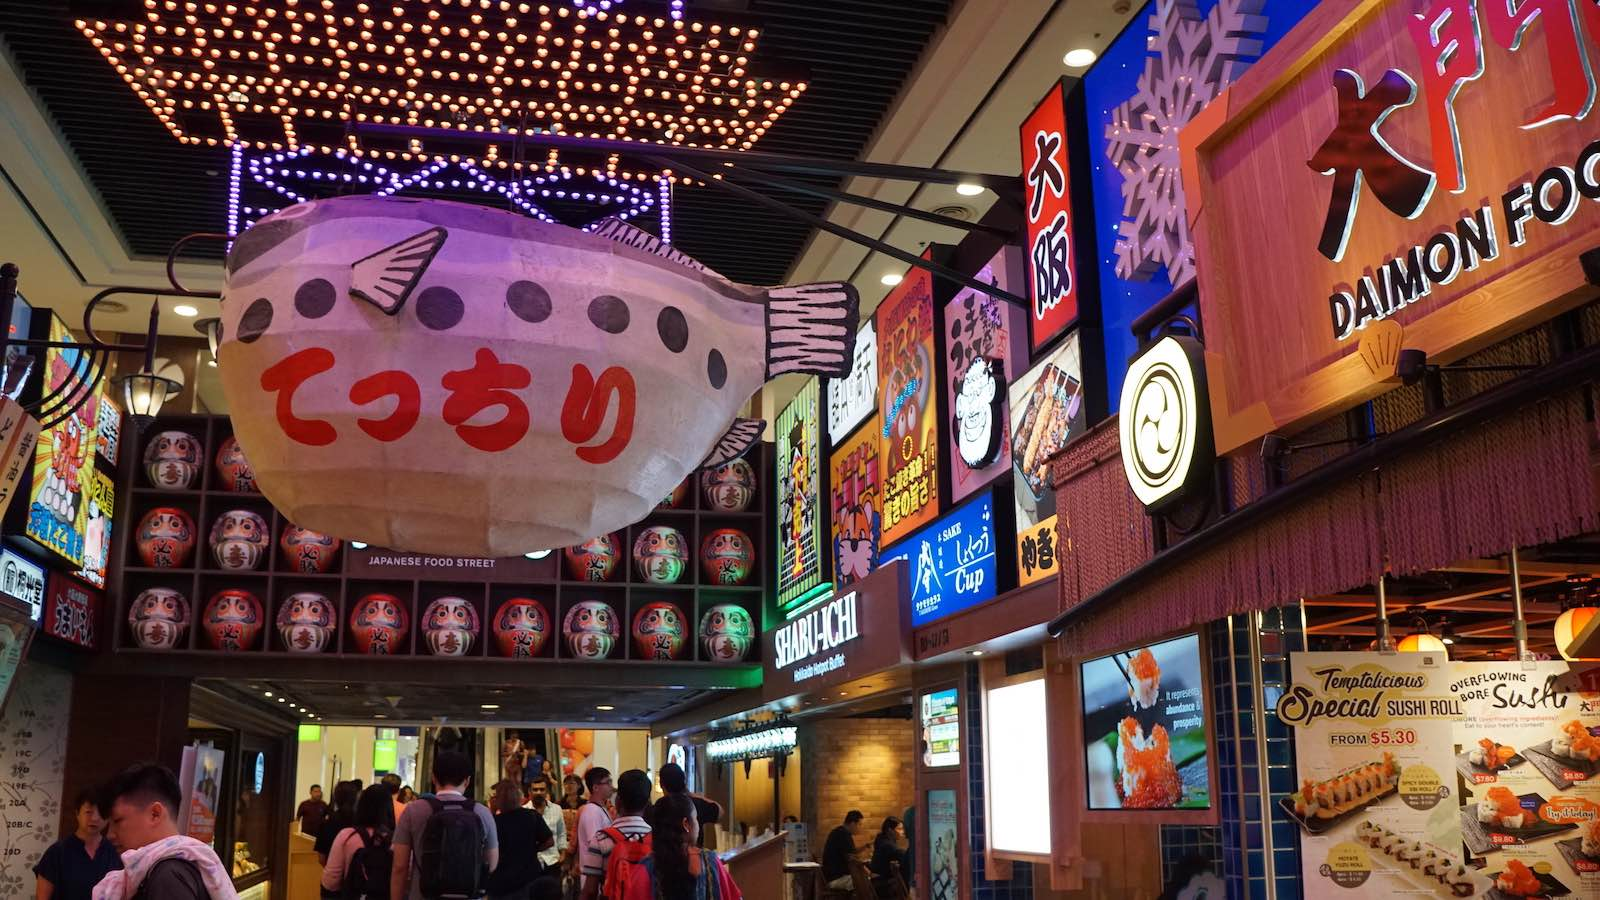 Another night, I explored a local mall which had different wings that were themed to different countries/cultures, here's the 'Japan' wing